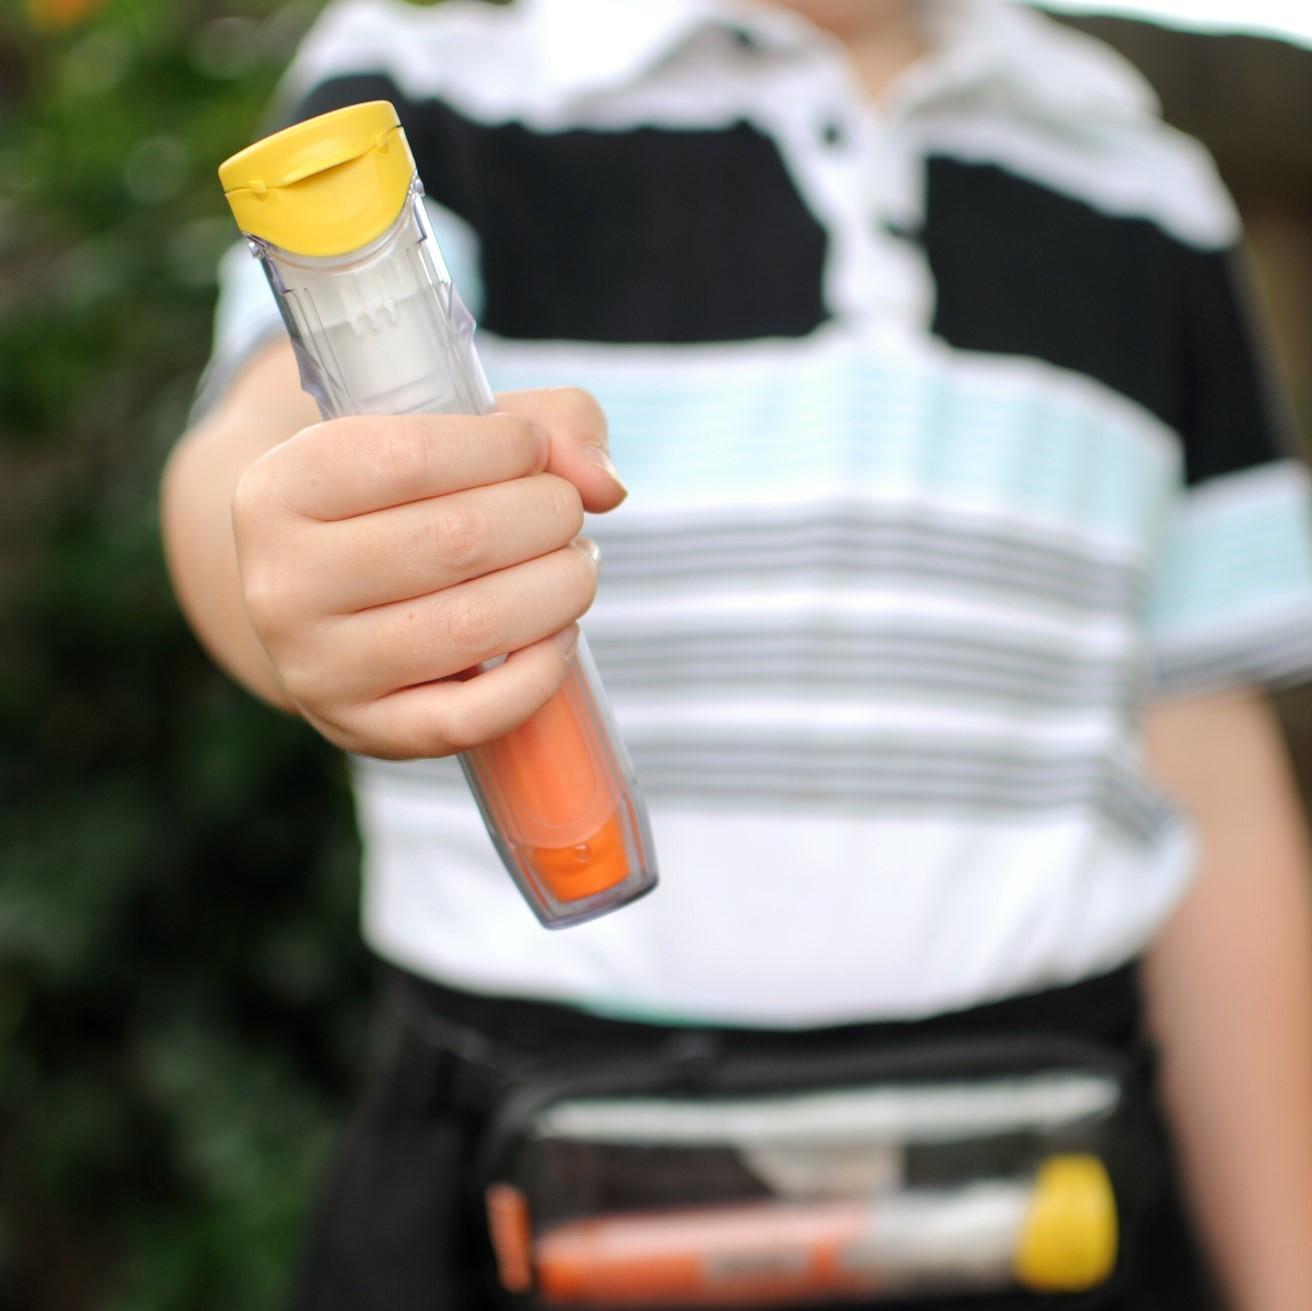 Child holding an epinephrine auto-injector, with another one shown in a small pouch around the child's waist.